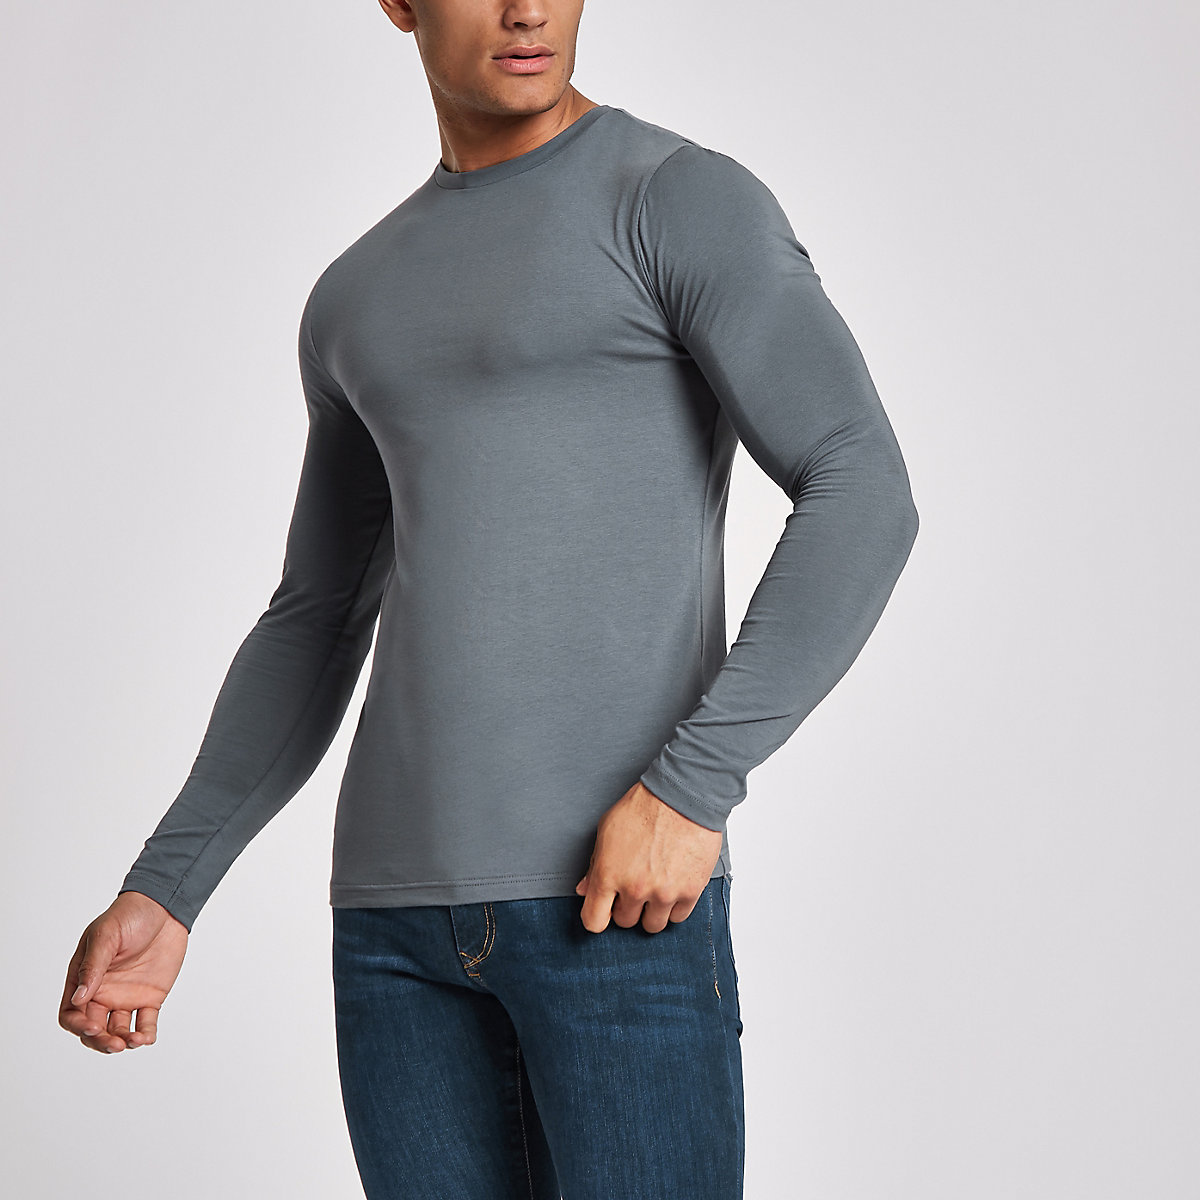 Dunkelgraues, langärmliges Muscle Fit T-Shirt